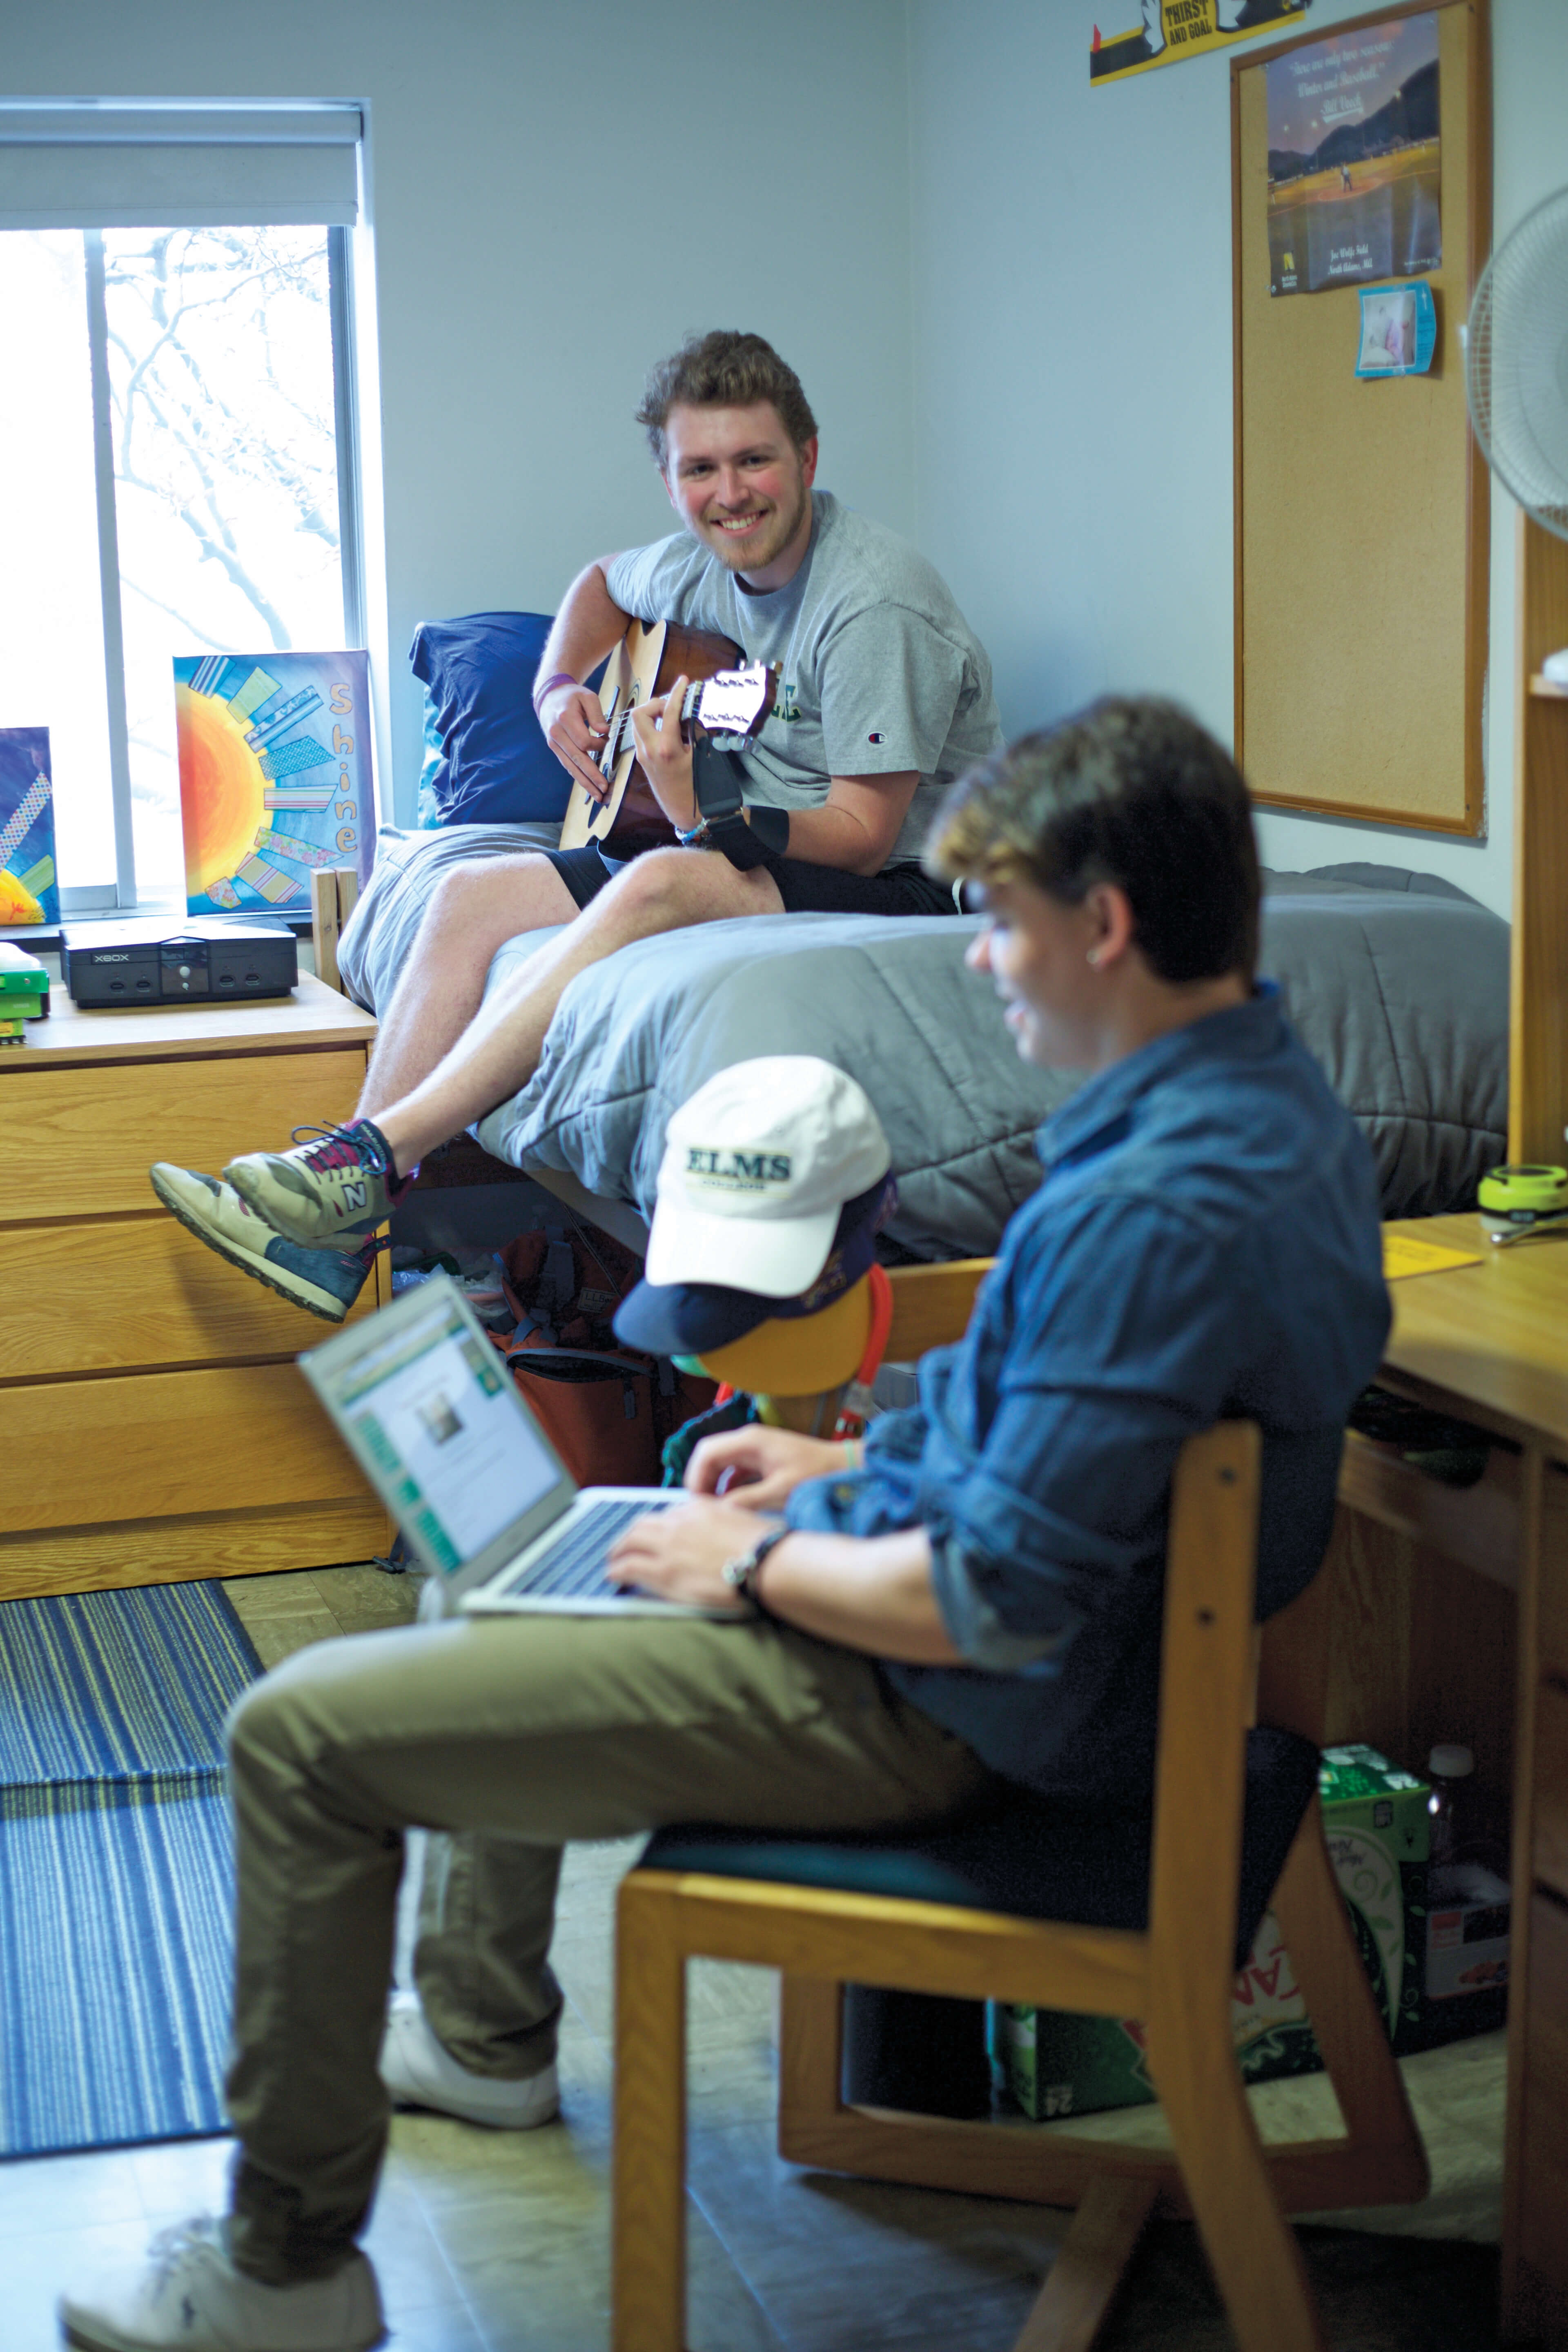 Photo of students in a dorm room in Rose William Hall